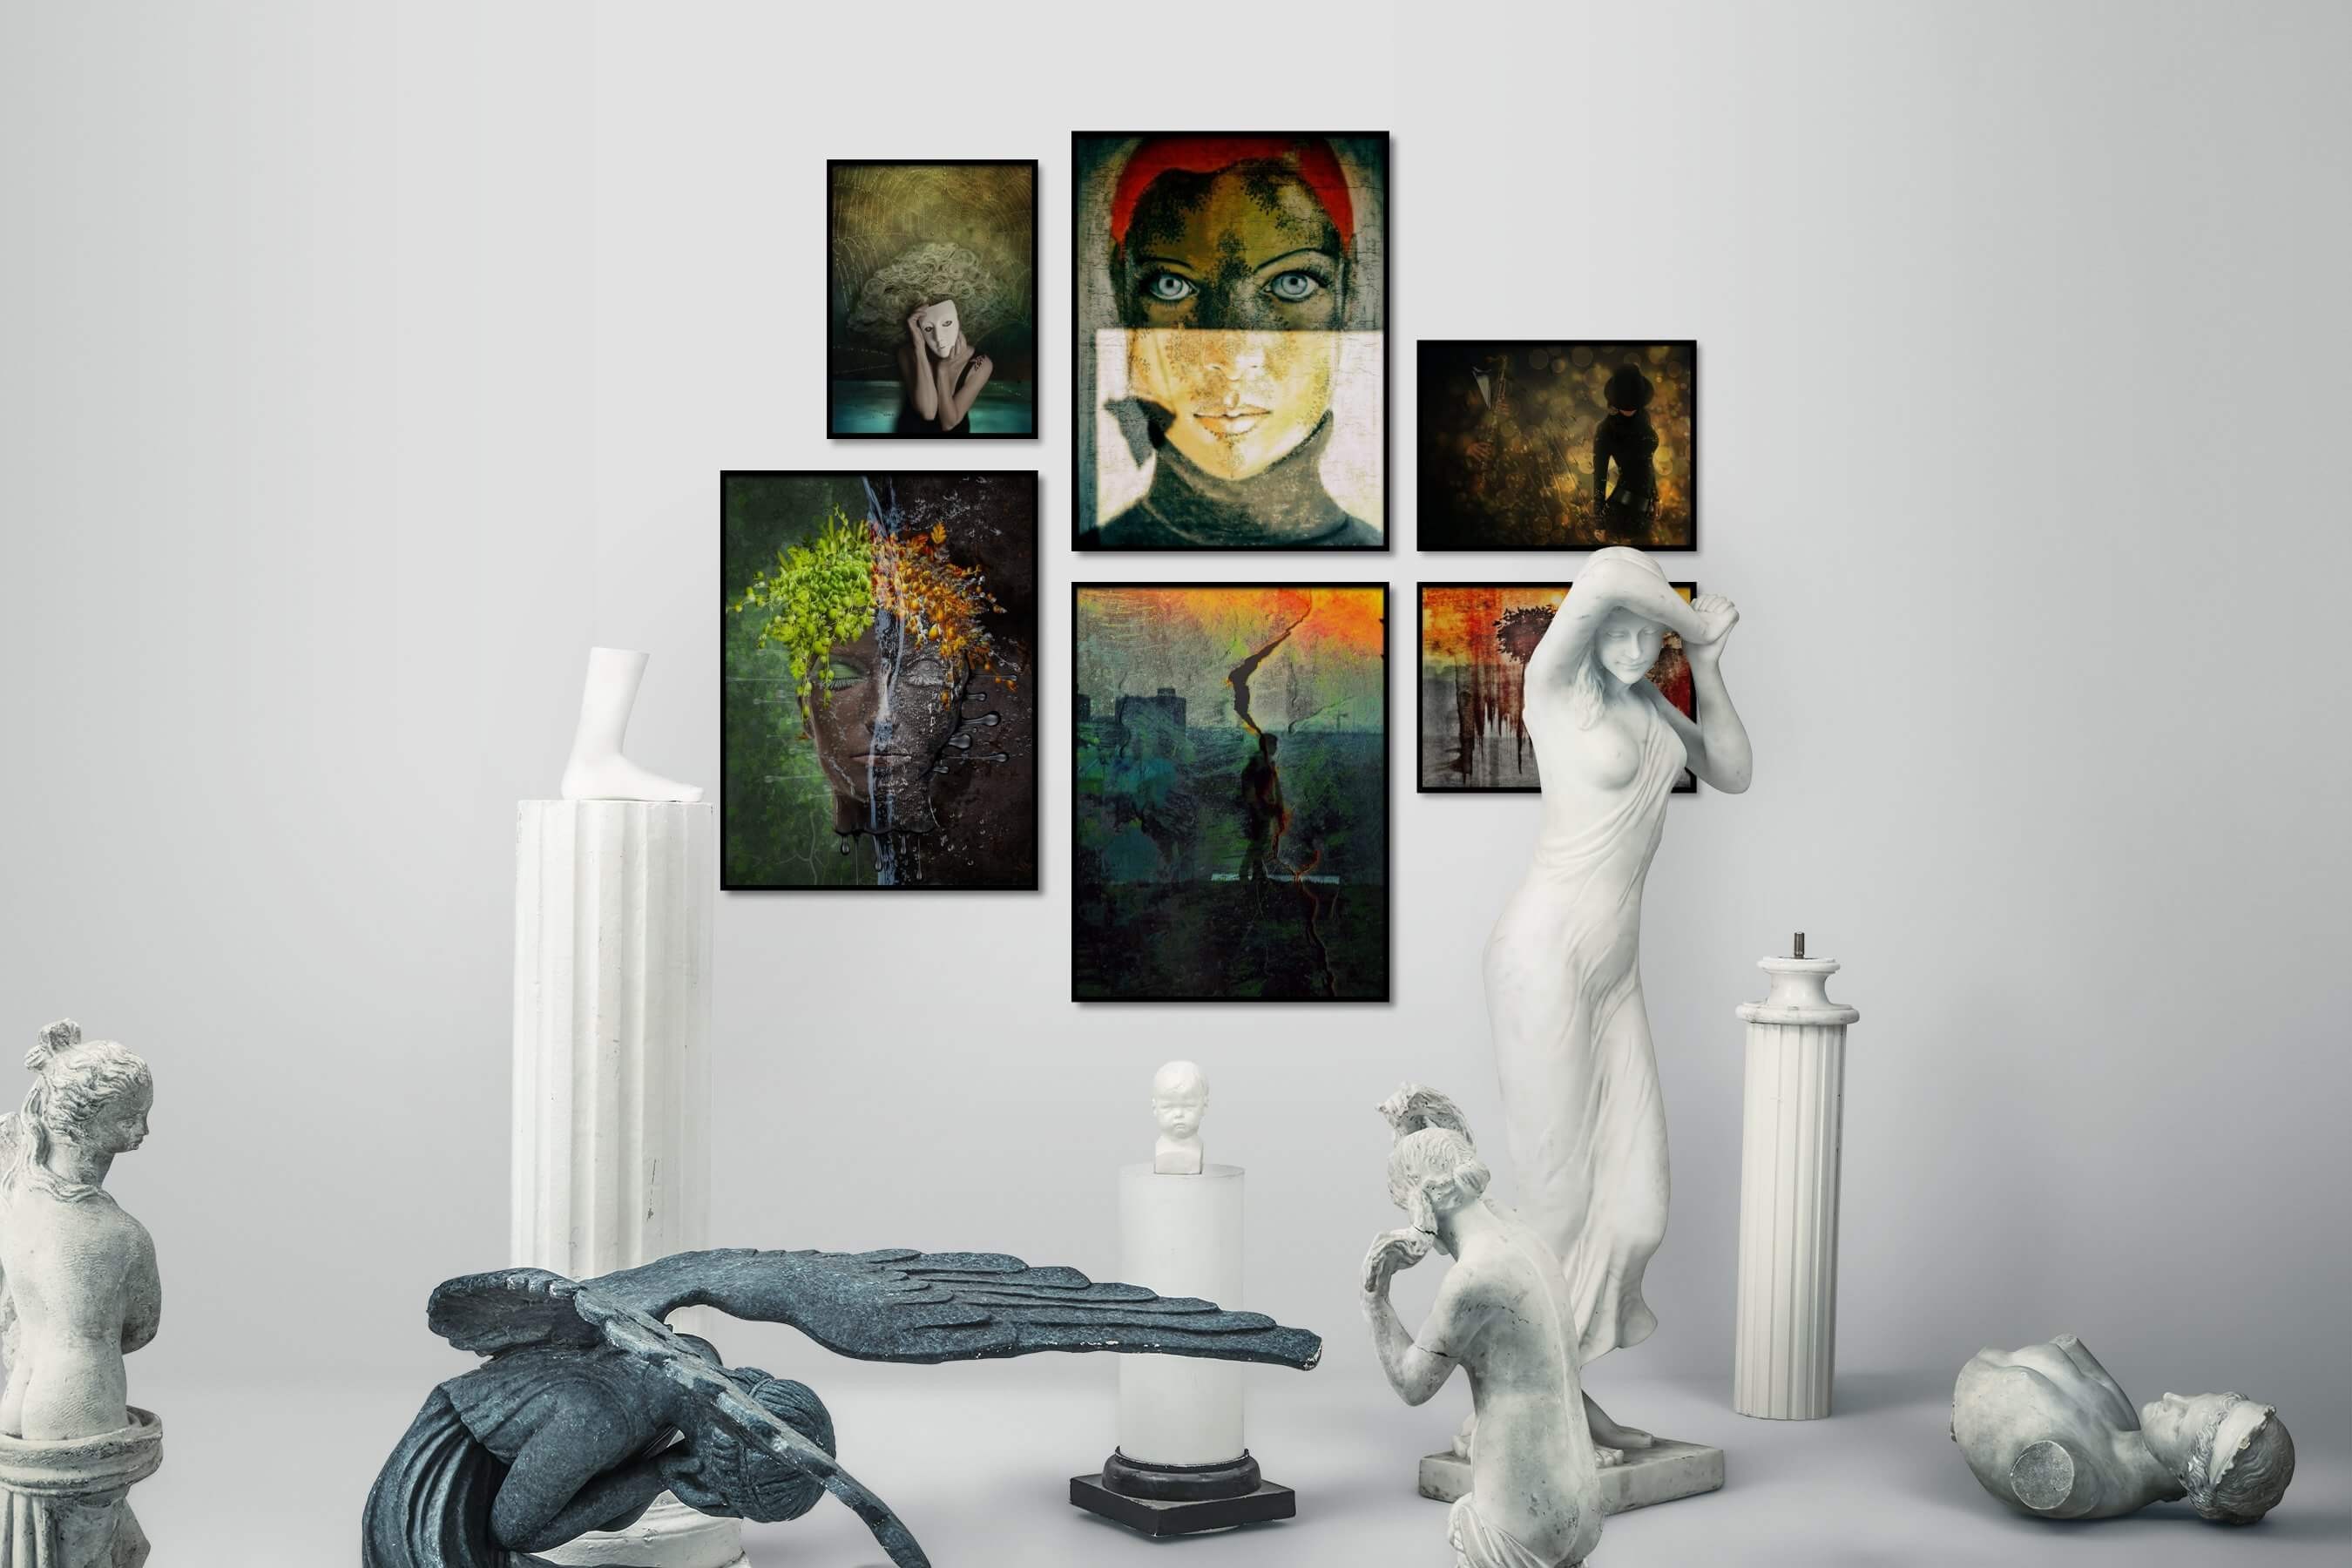 Gallery wall idea with six framed pictures arranged on a wall depicting Artsy and Fashion & Beauty